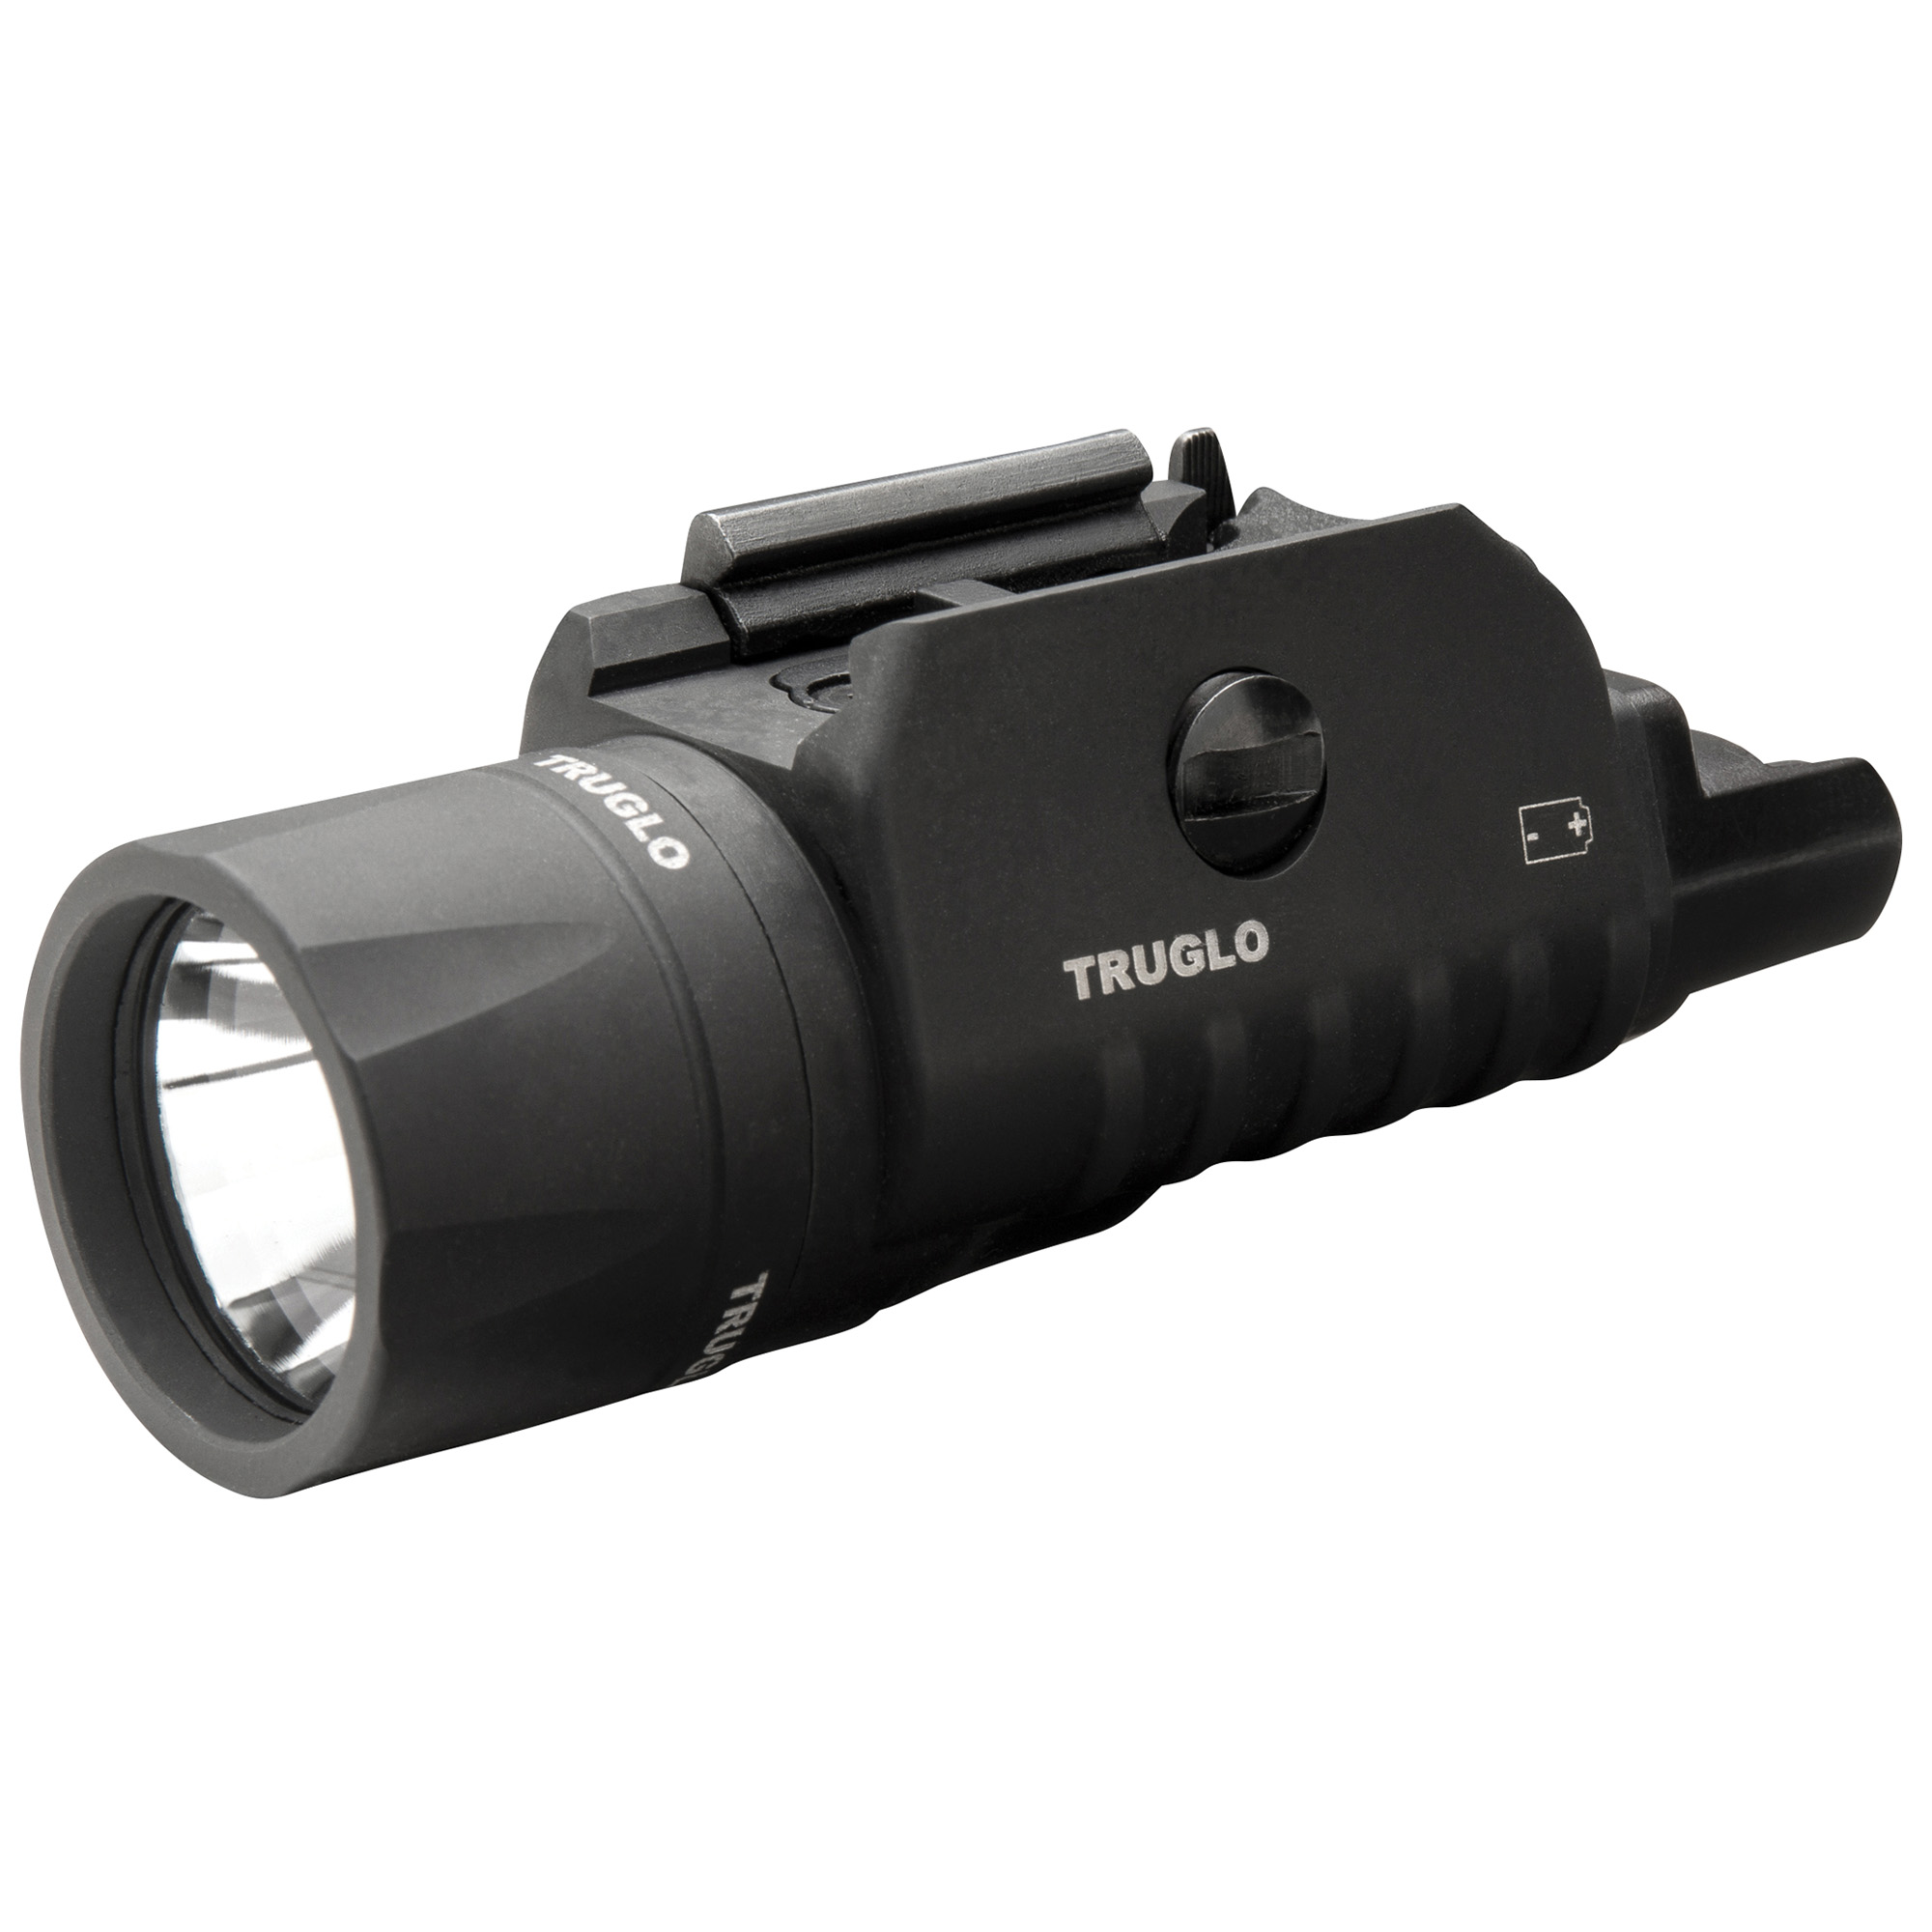 Truglo Tru Point Laser Fits Picatinny Red Finish Quick